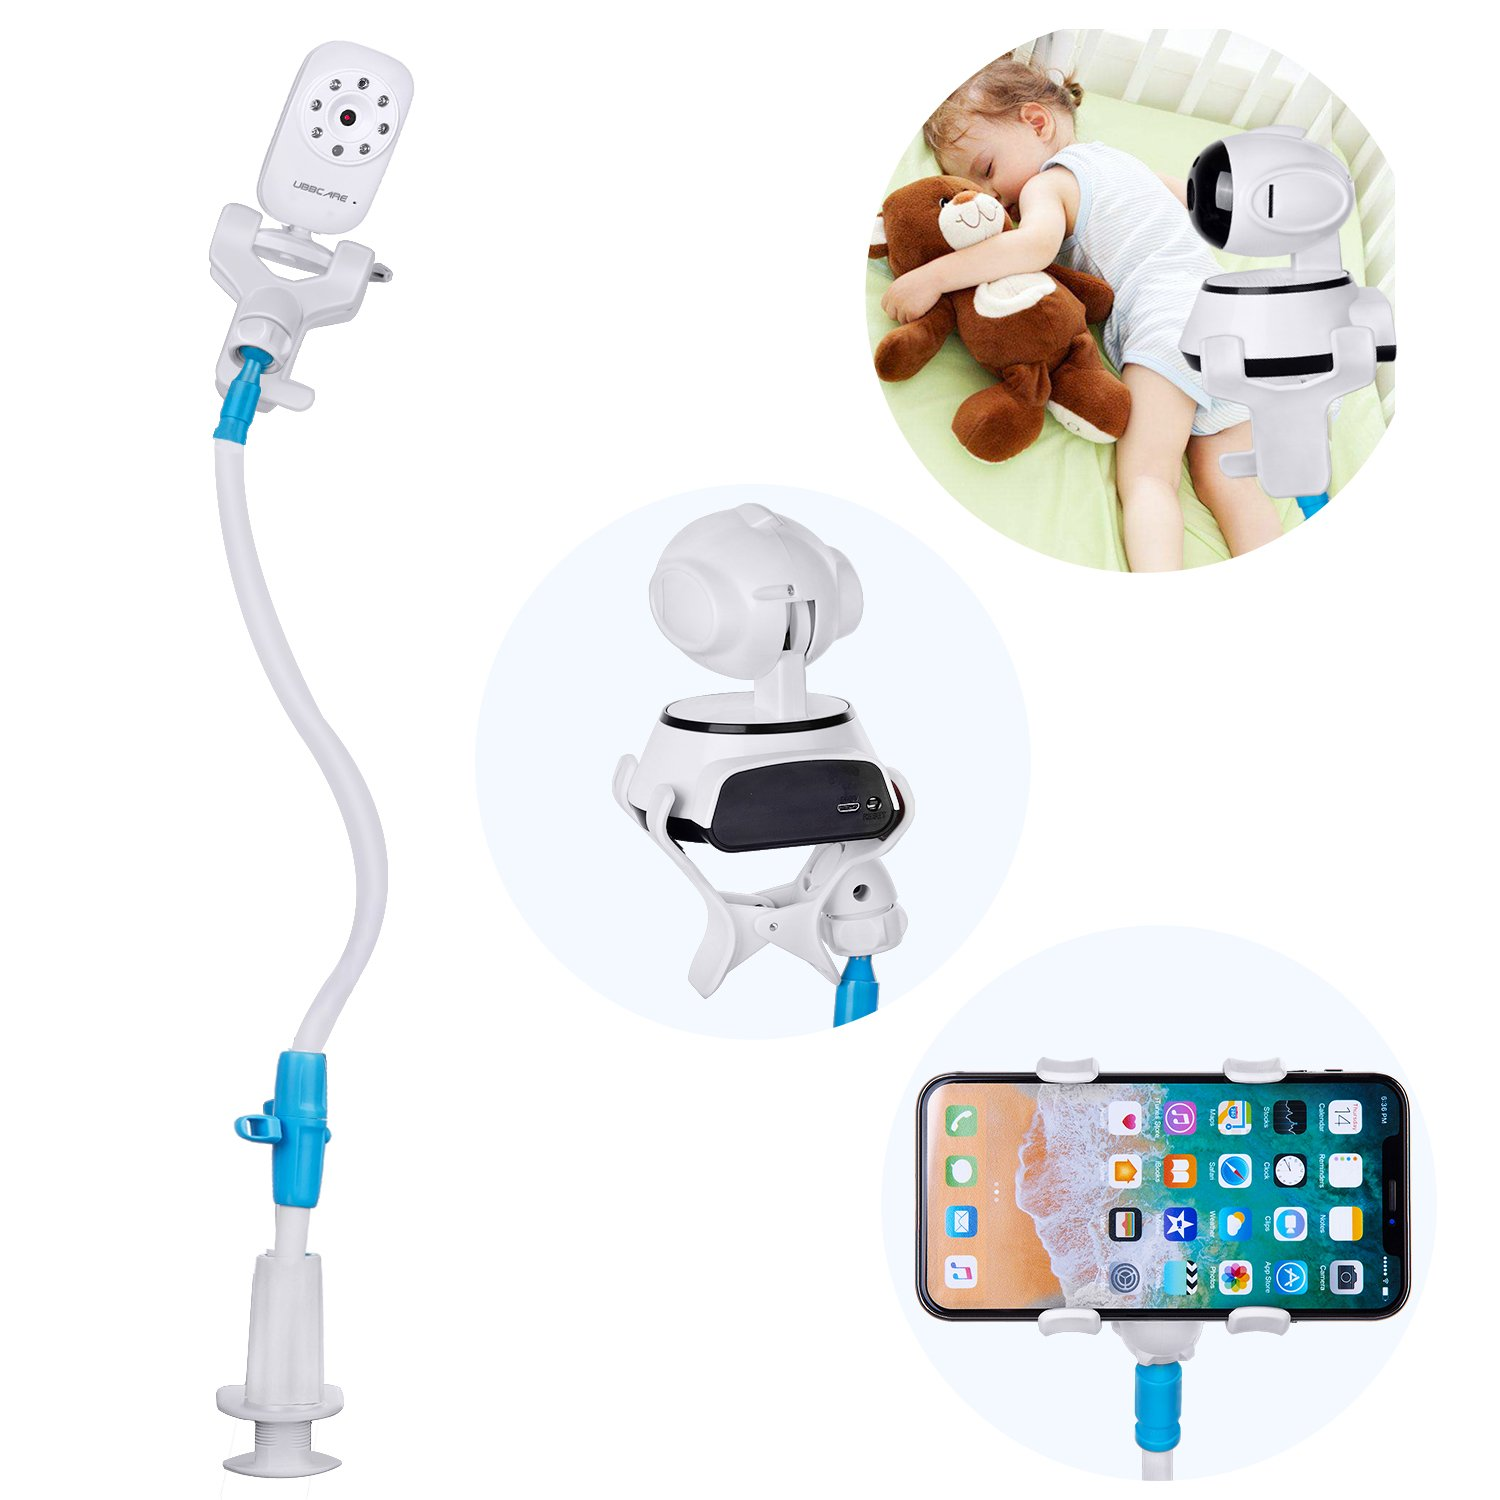 Baby Monitors Camera Holder Stand Universal Cute Cellphone Smartphone Stand Holder for Table Desk